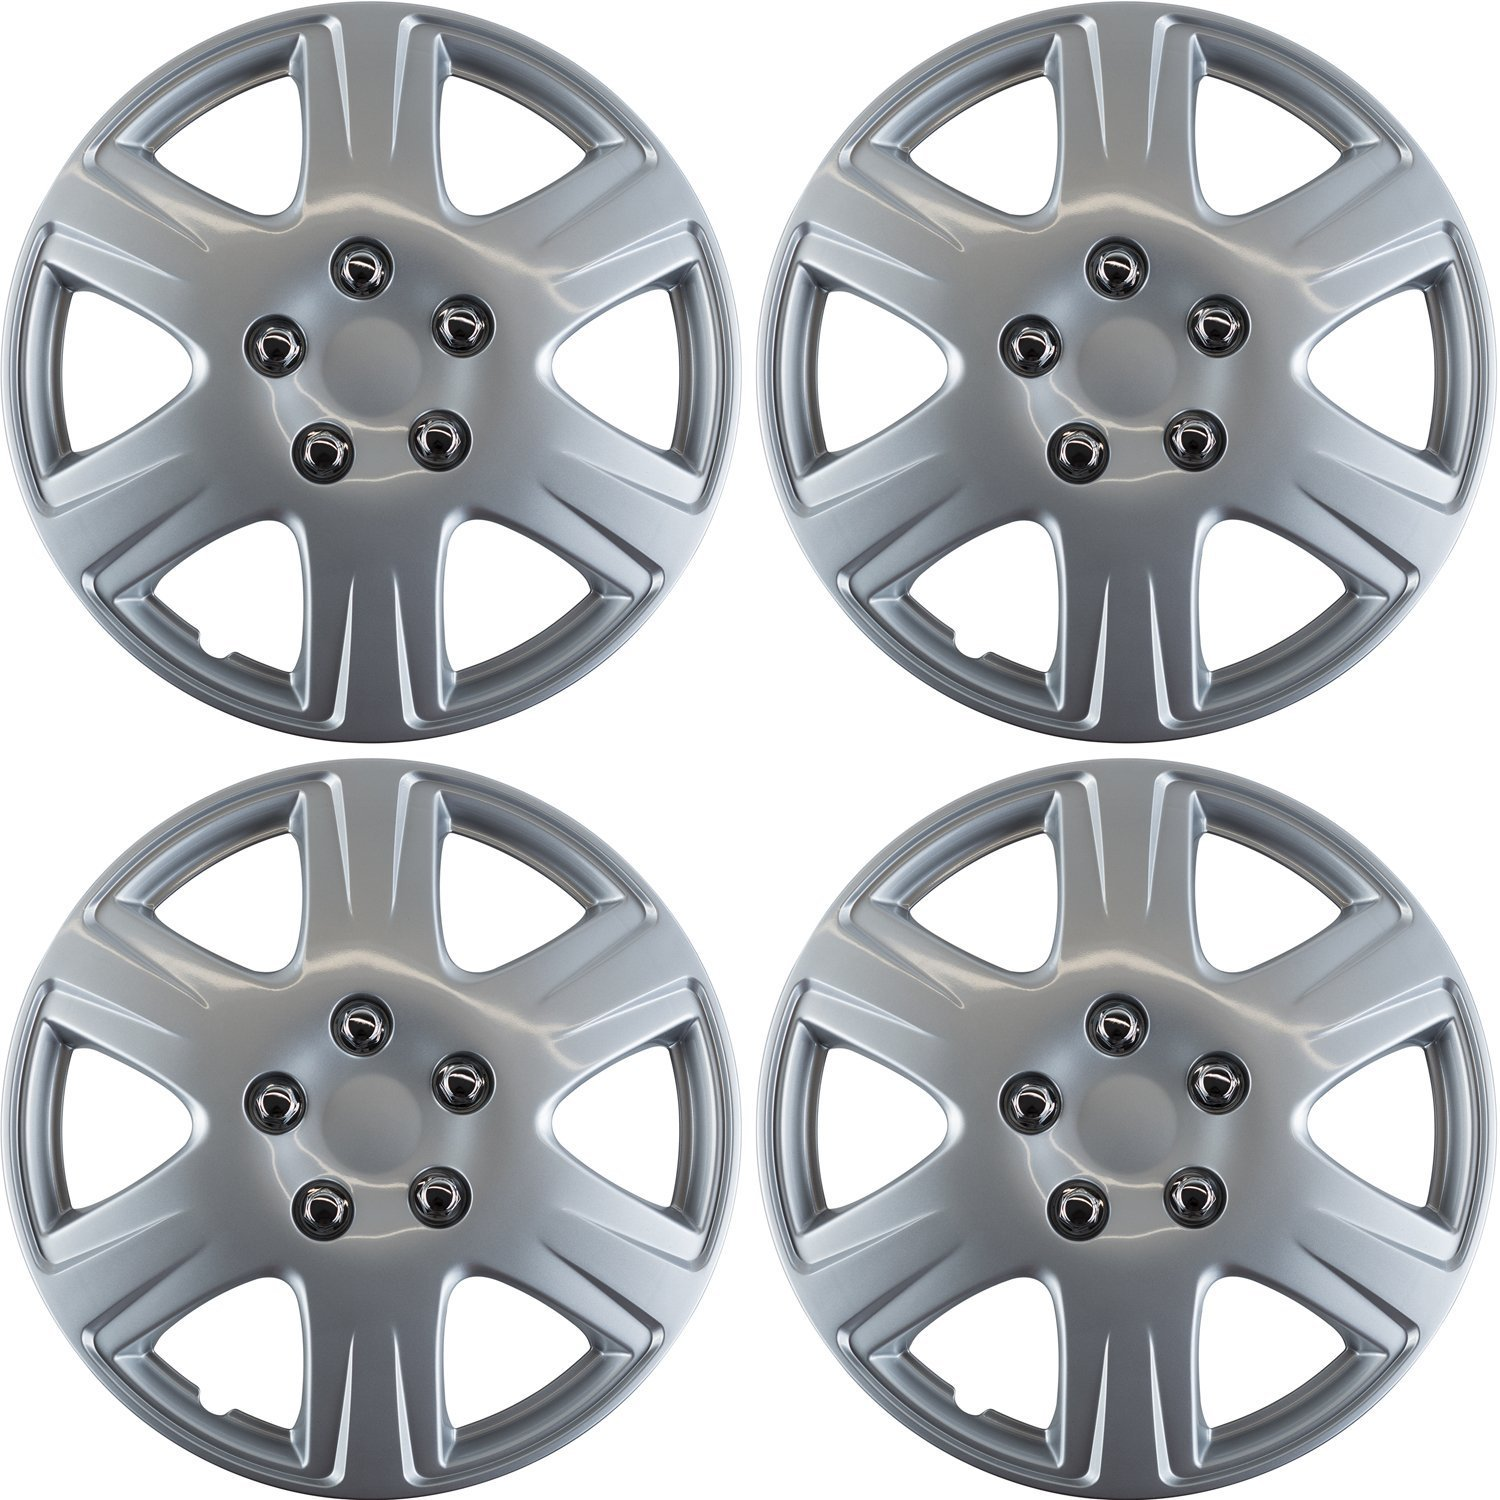 OxGord Snap-On Hubcaps